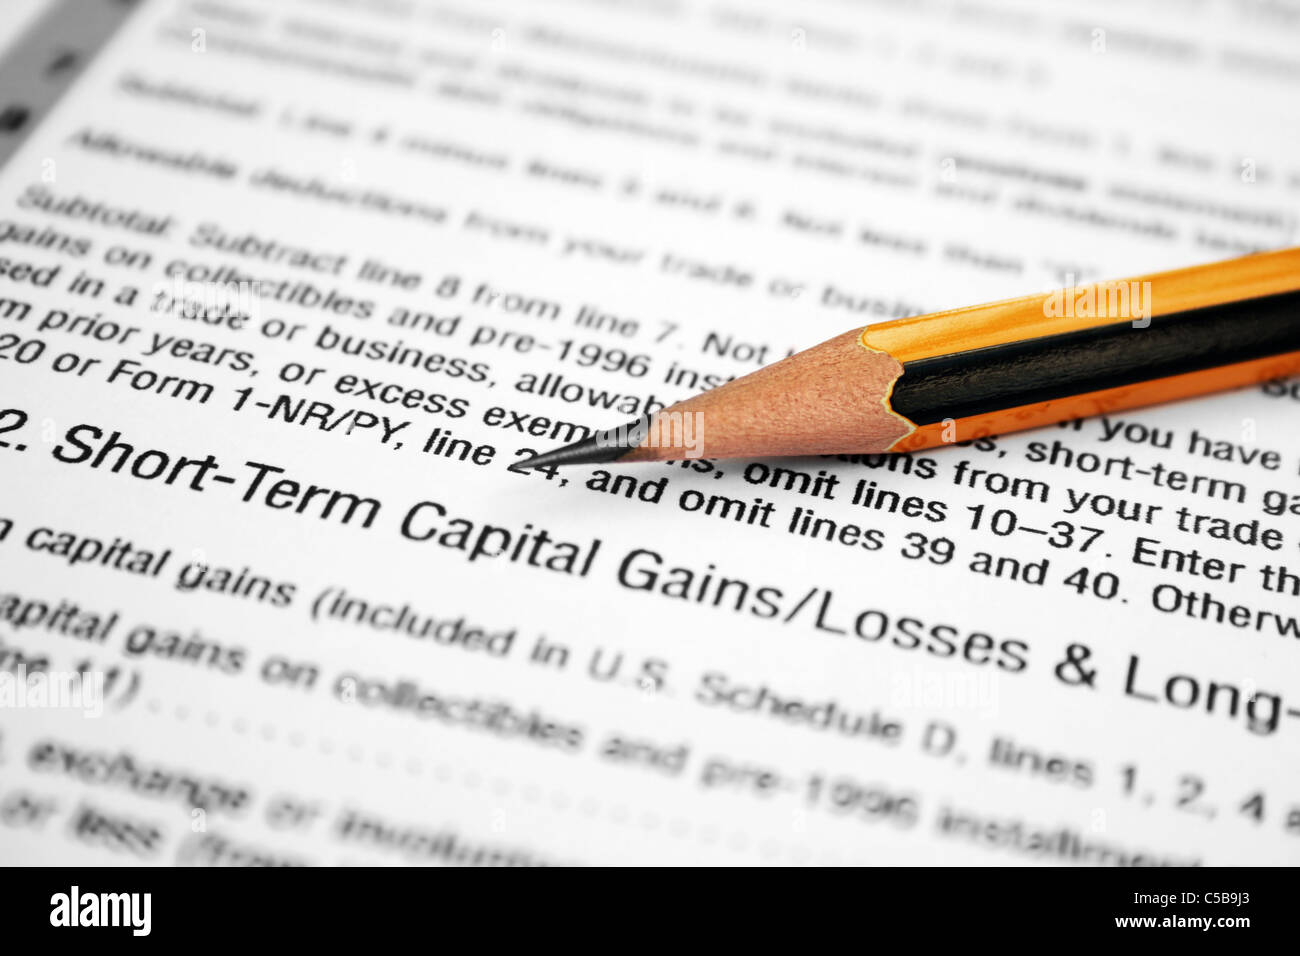 Capital Gains article Stock Photo